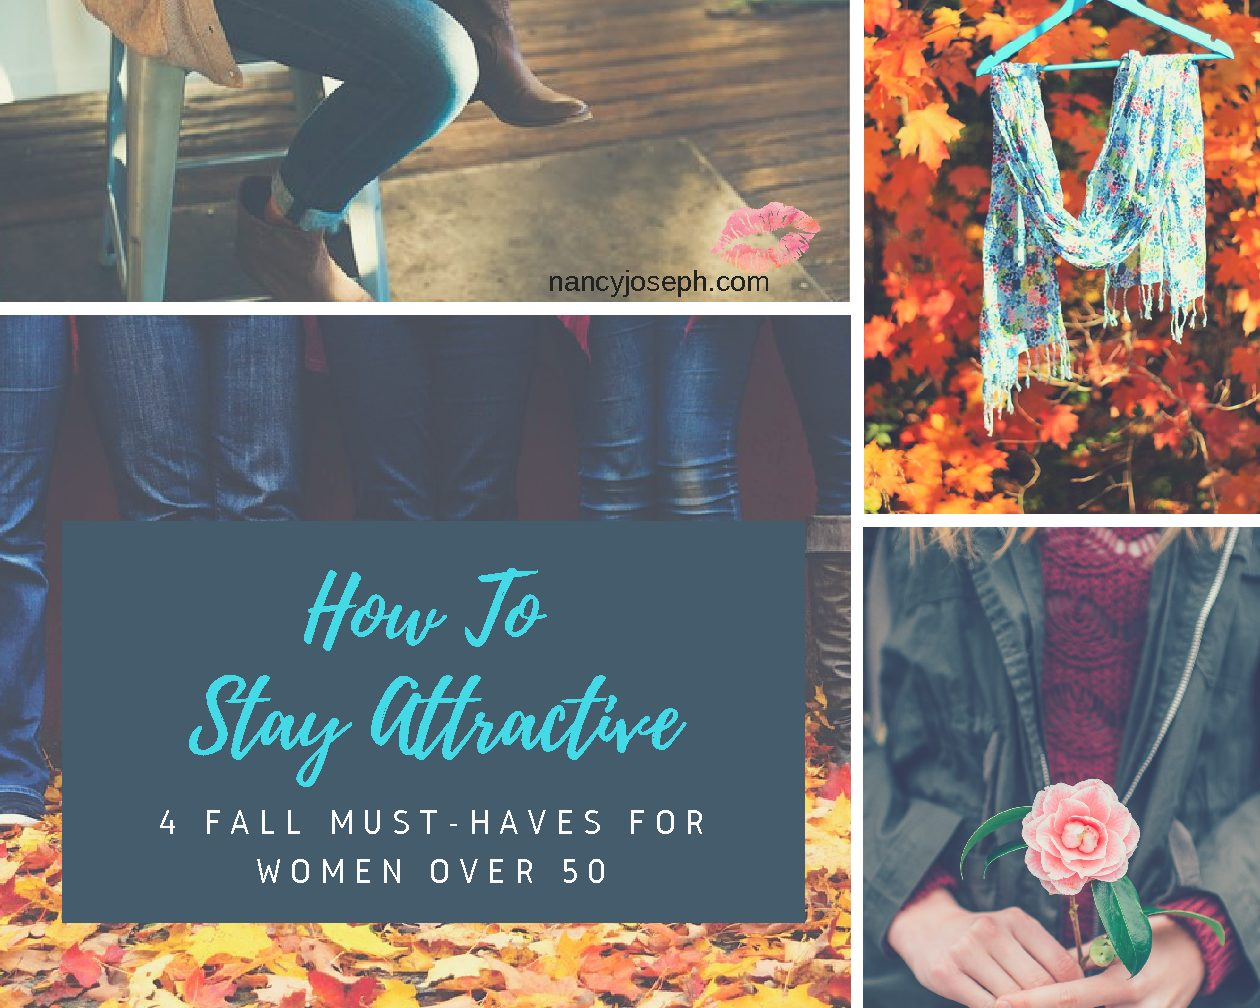 How To Stay Attractive – Fall 2017 Fashion Must-Haves for Women Over 50